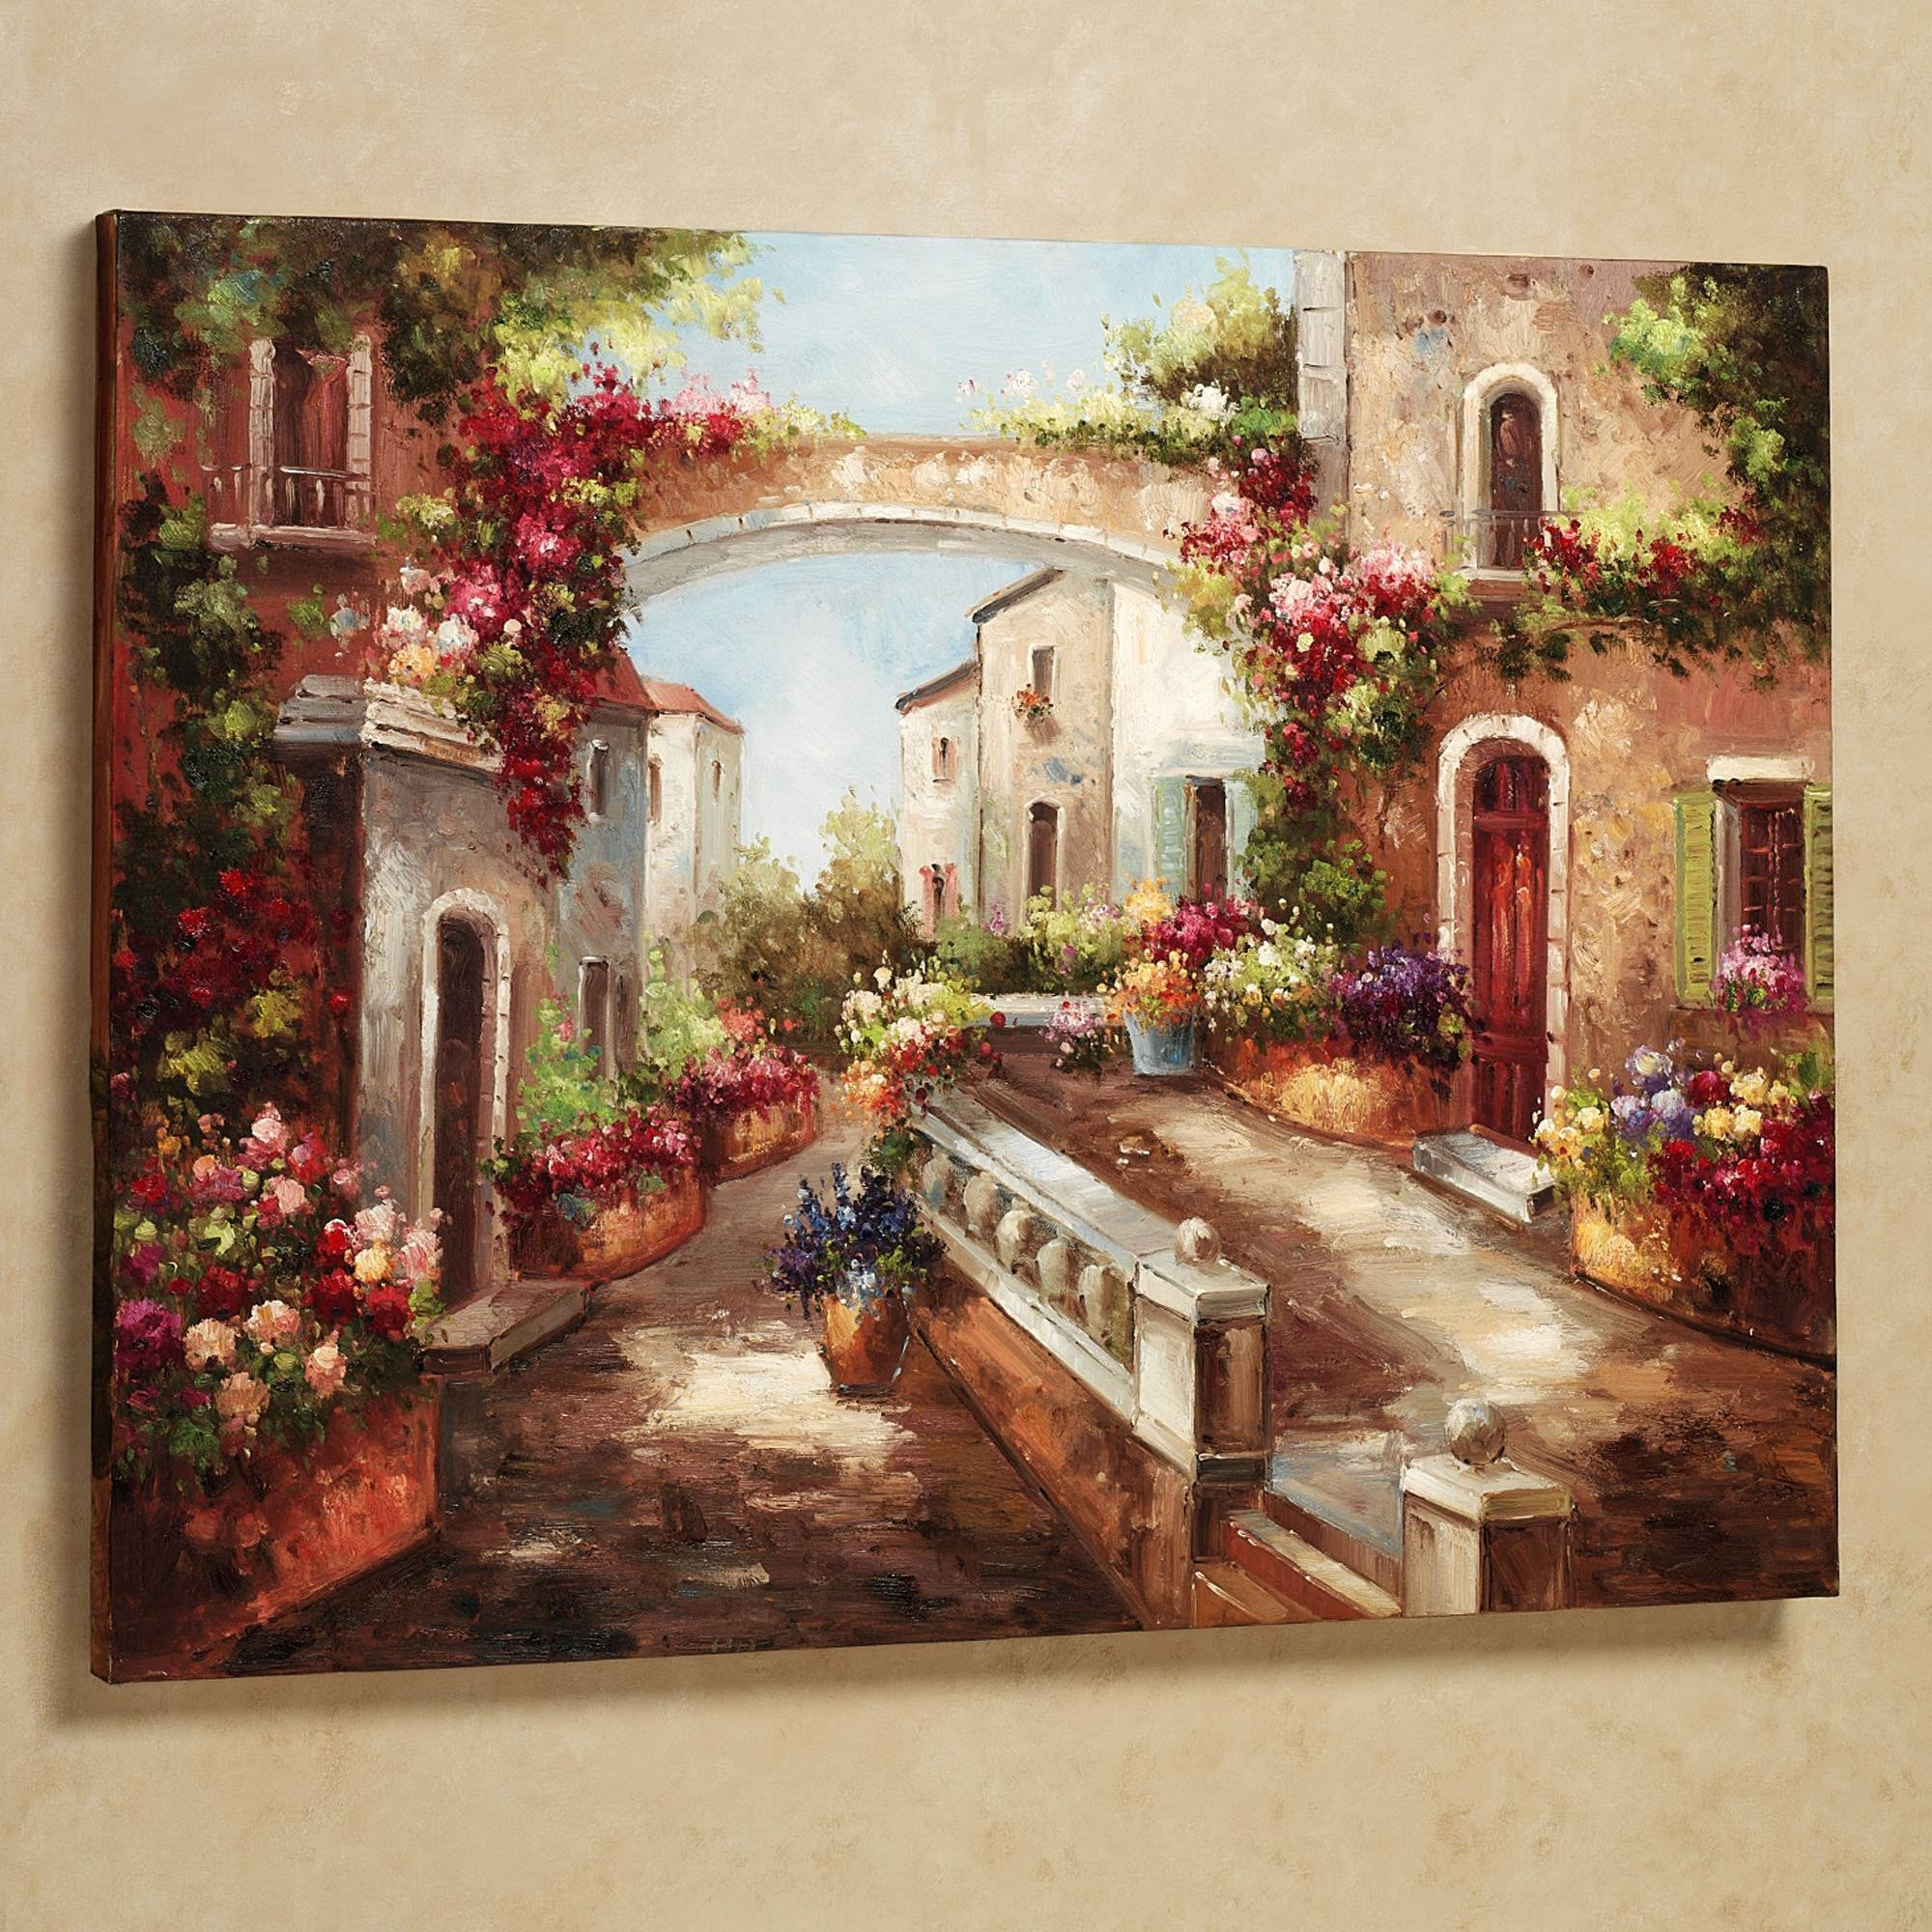 Wall Art Designs: Tuscan Wall Art Early Spring Tuscan Season Theme Intended For Recent Tuscan Wall Art Decor (View 4 of 20)